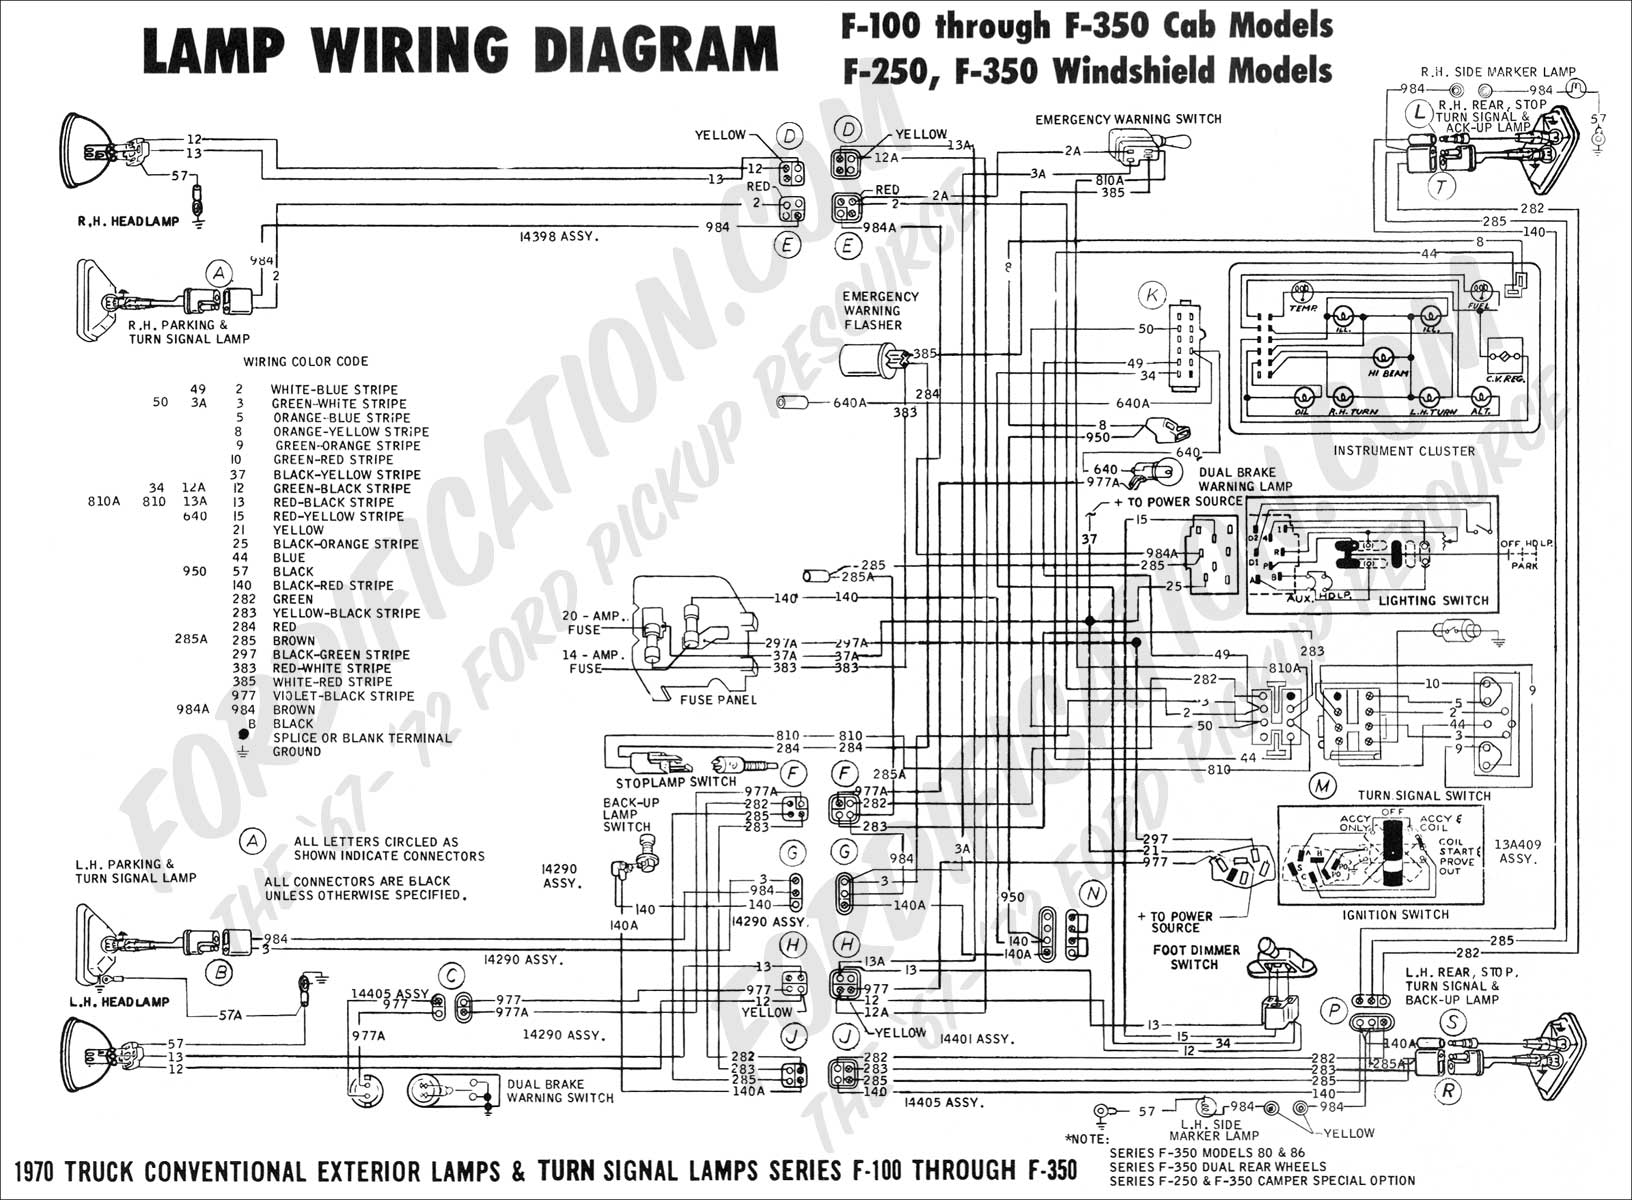 wiring diagram_70ext lights01 ford truck technical drawings and schematics section h wiring 2003 ford f250 wiring diagram online at mifinder.co